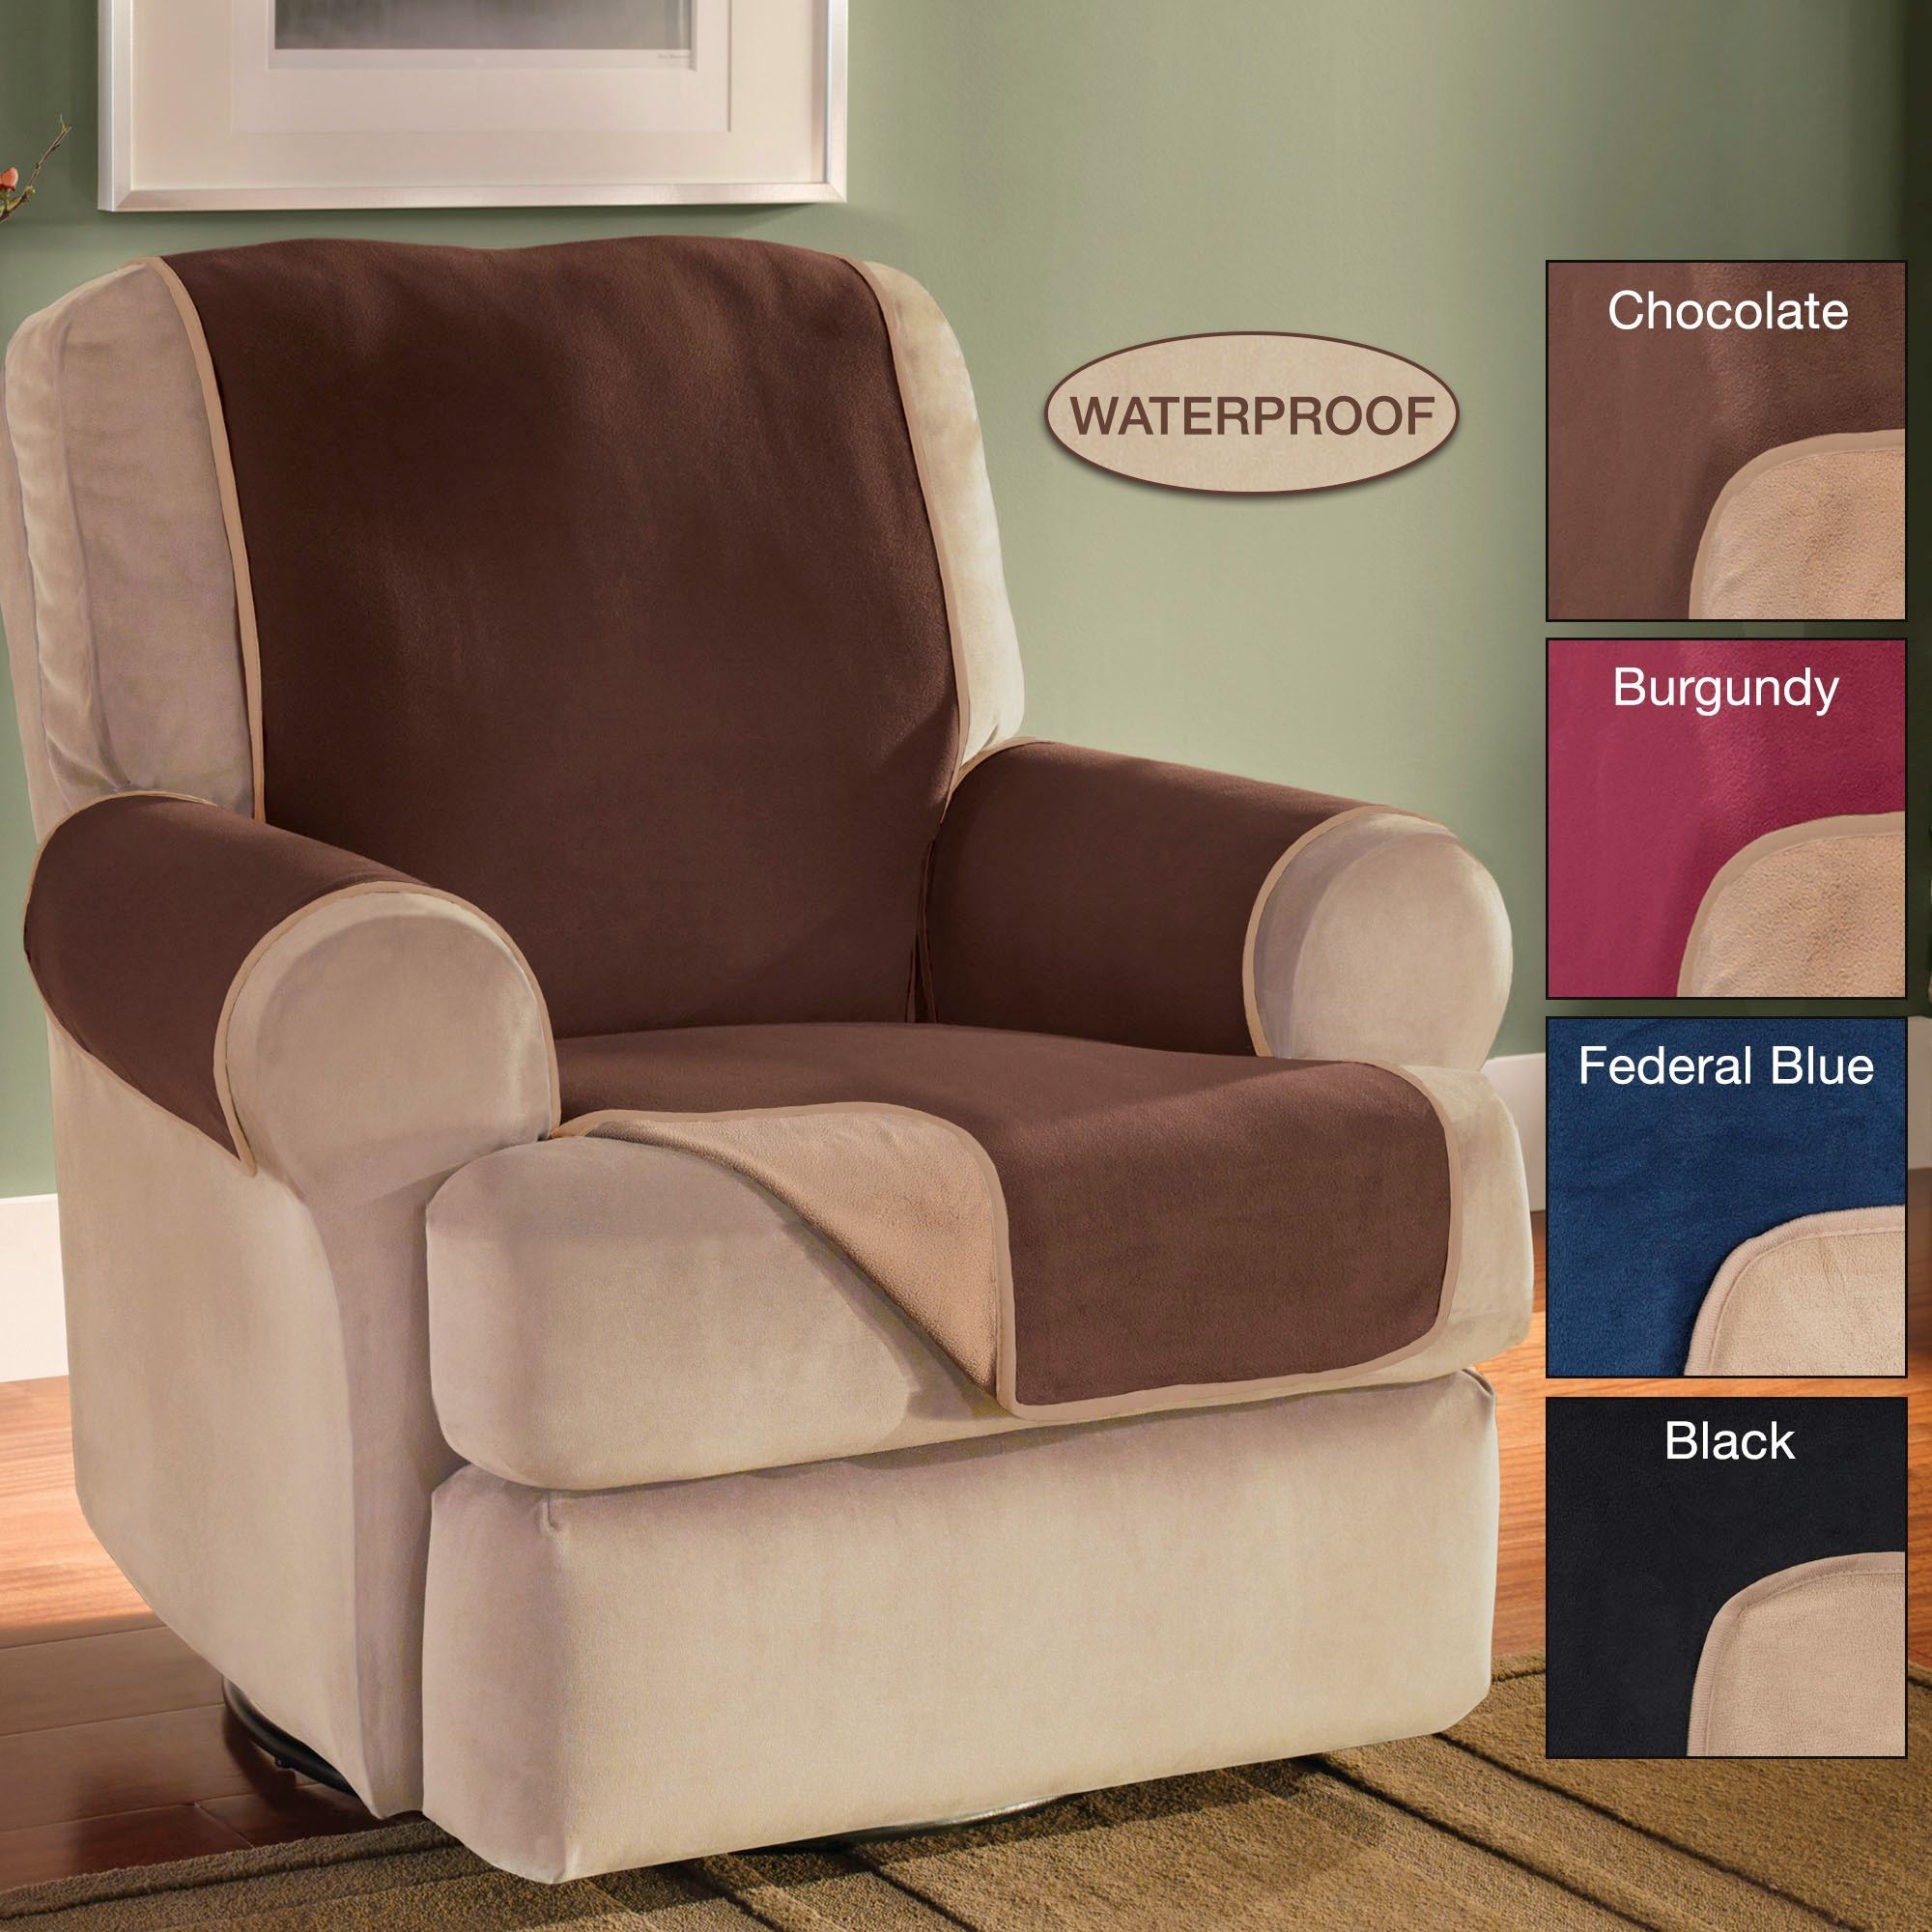 slipcovers and ideas set furniture brown covers lovely recliner loveseat decoration mesmerizing in for comfy international bed home living cover bath rachel decorating sofa jcpenney dr beyond waterproof room